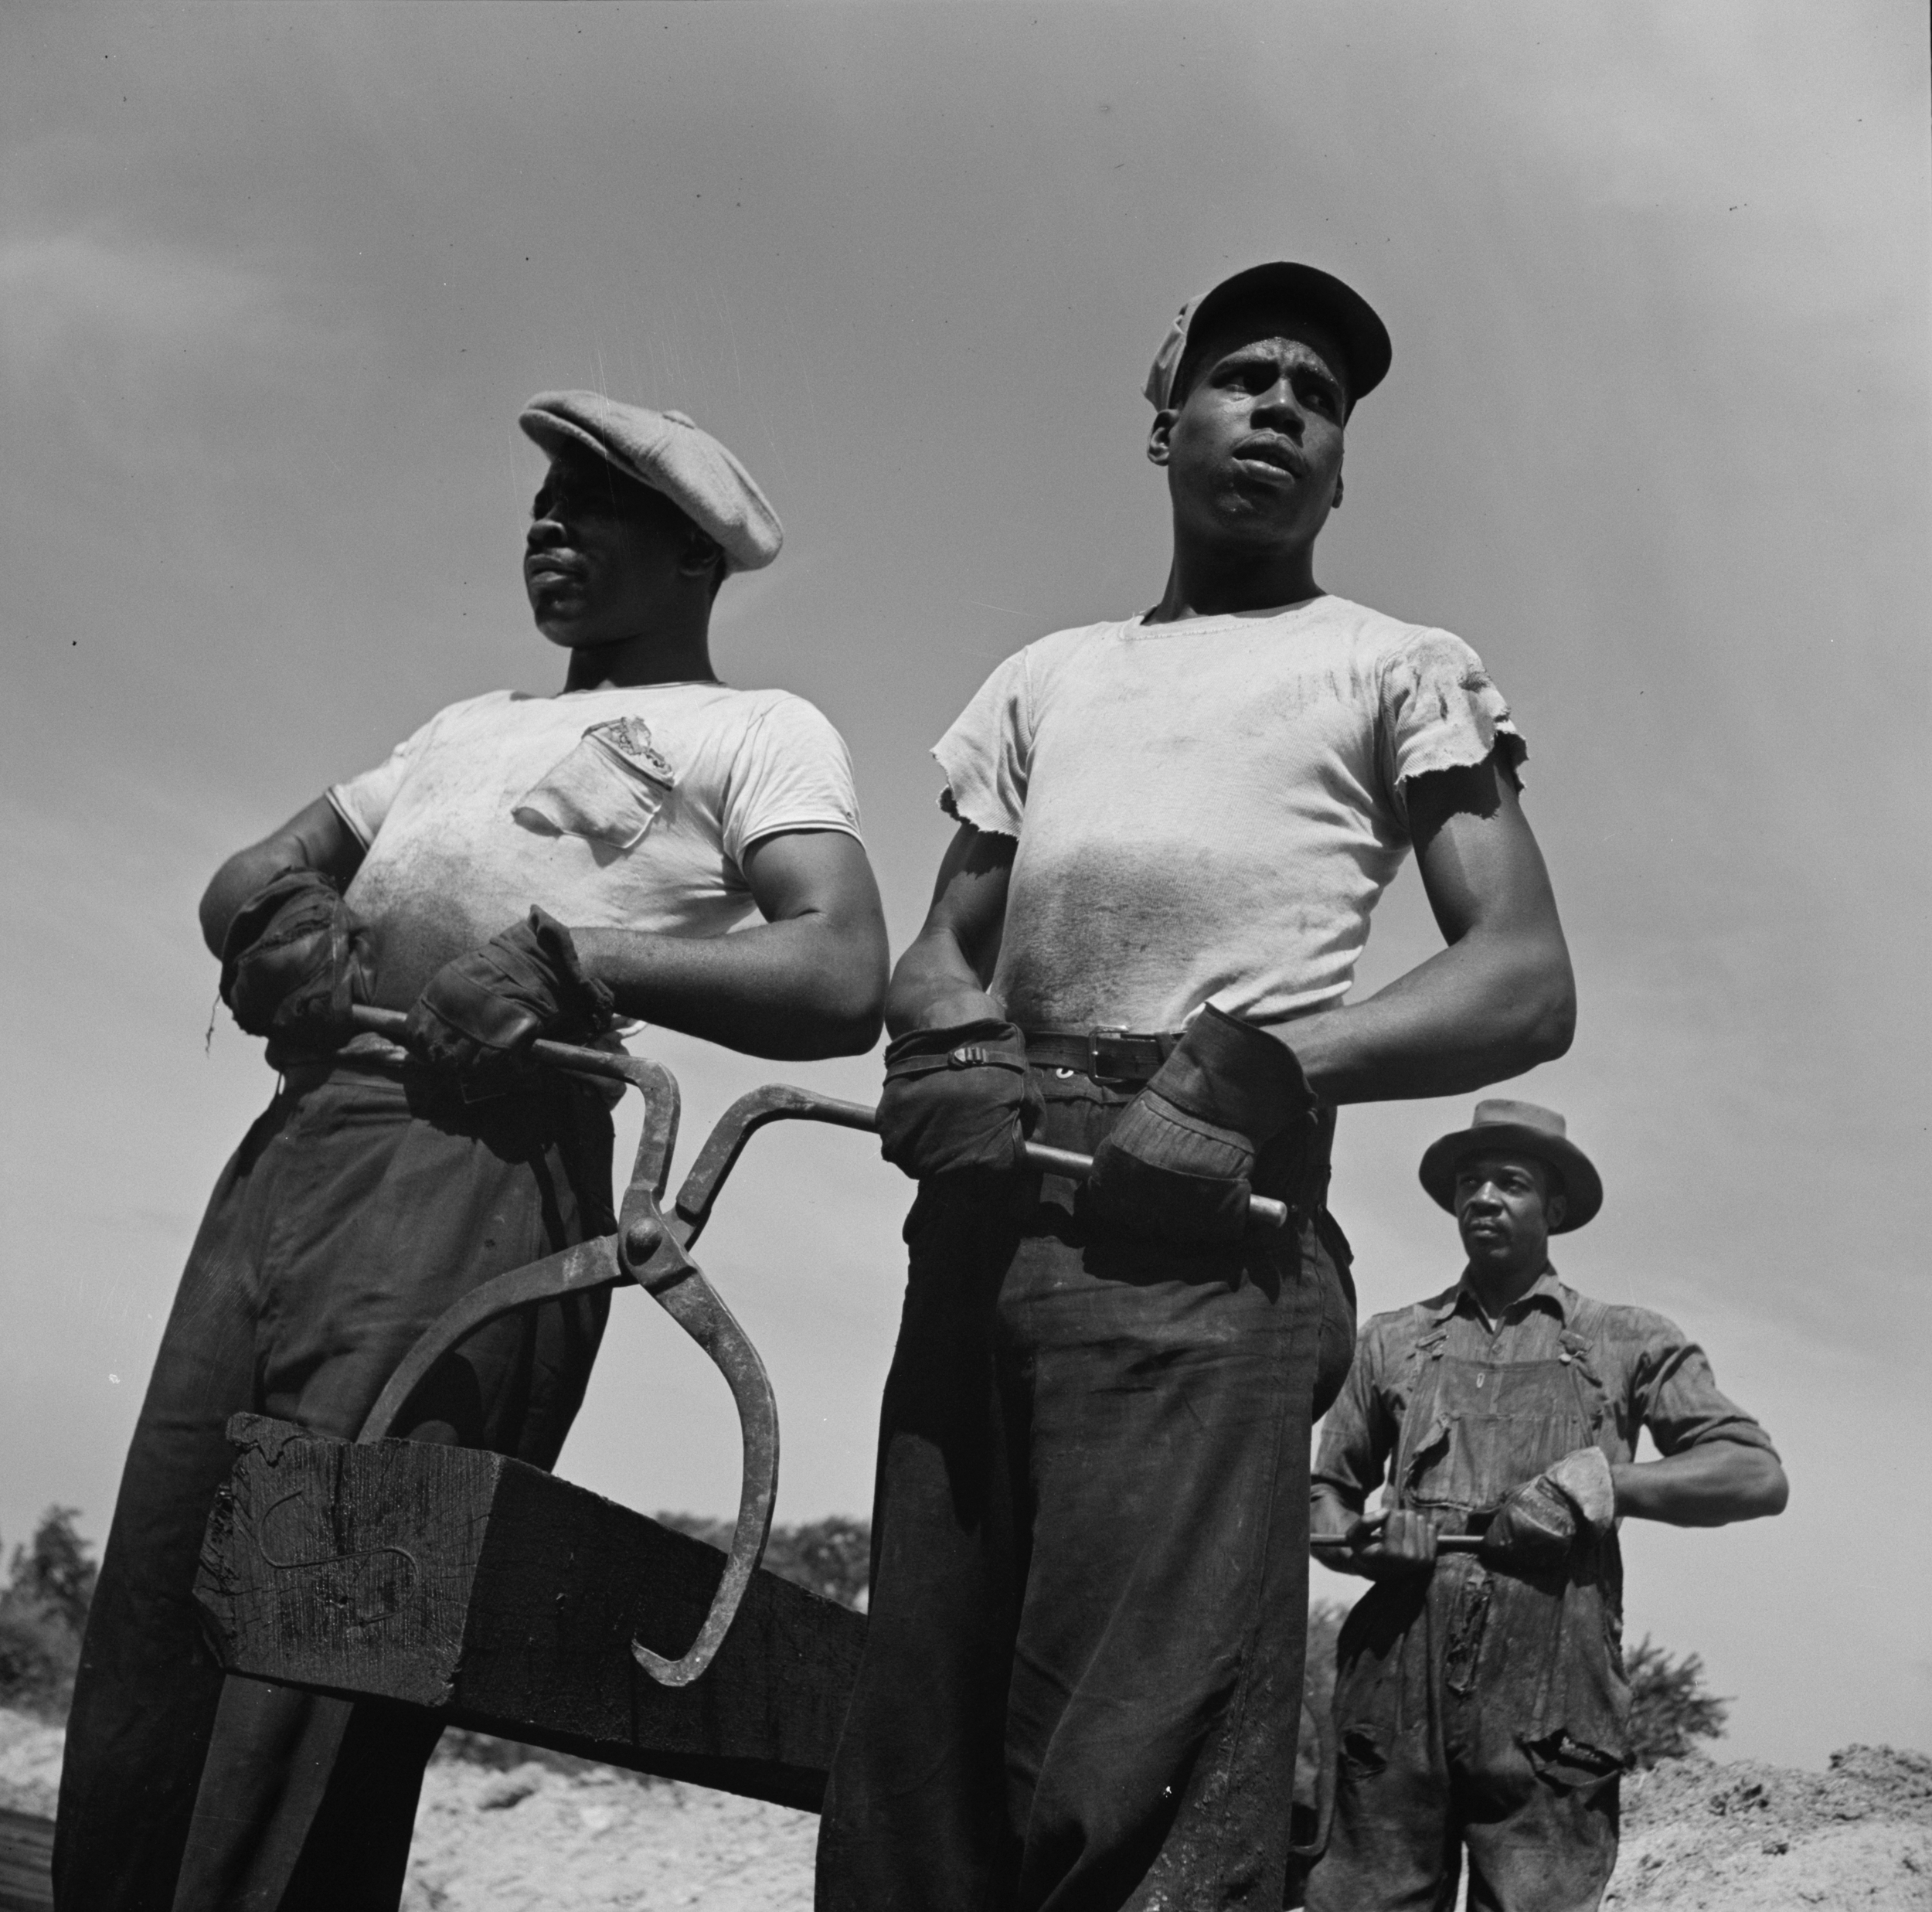 Photograph by Howard Liberman (1942) Courtesy of the Library of Congress